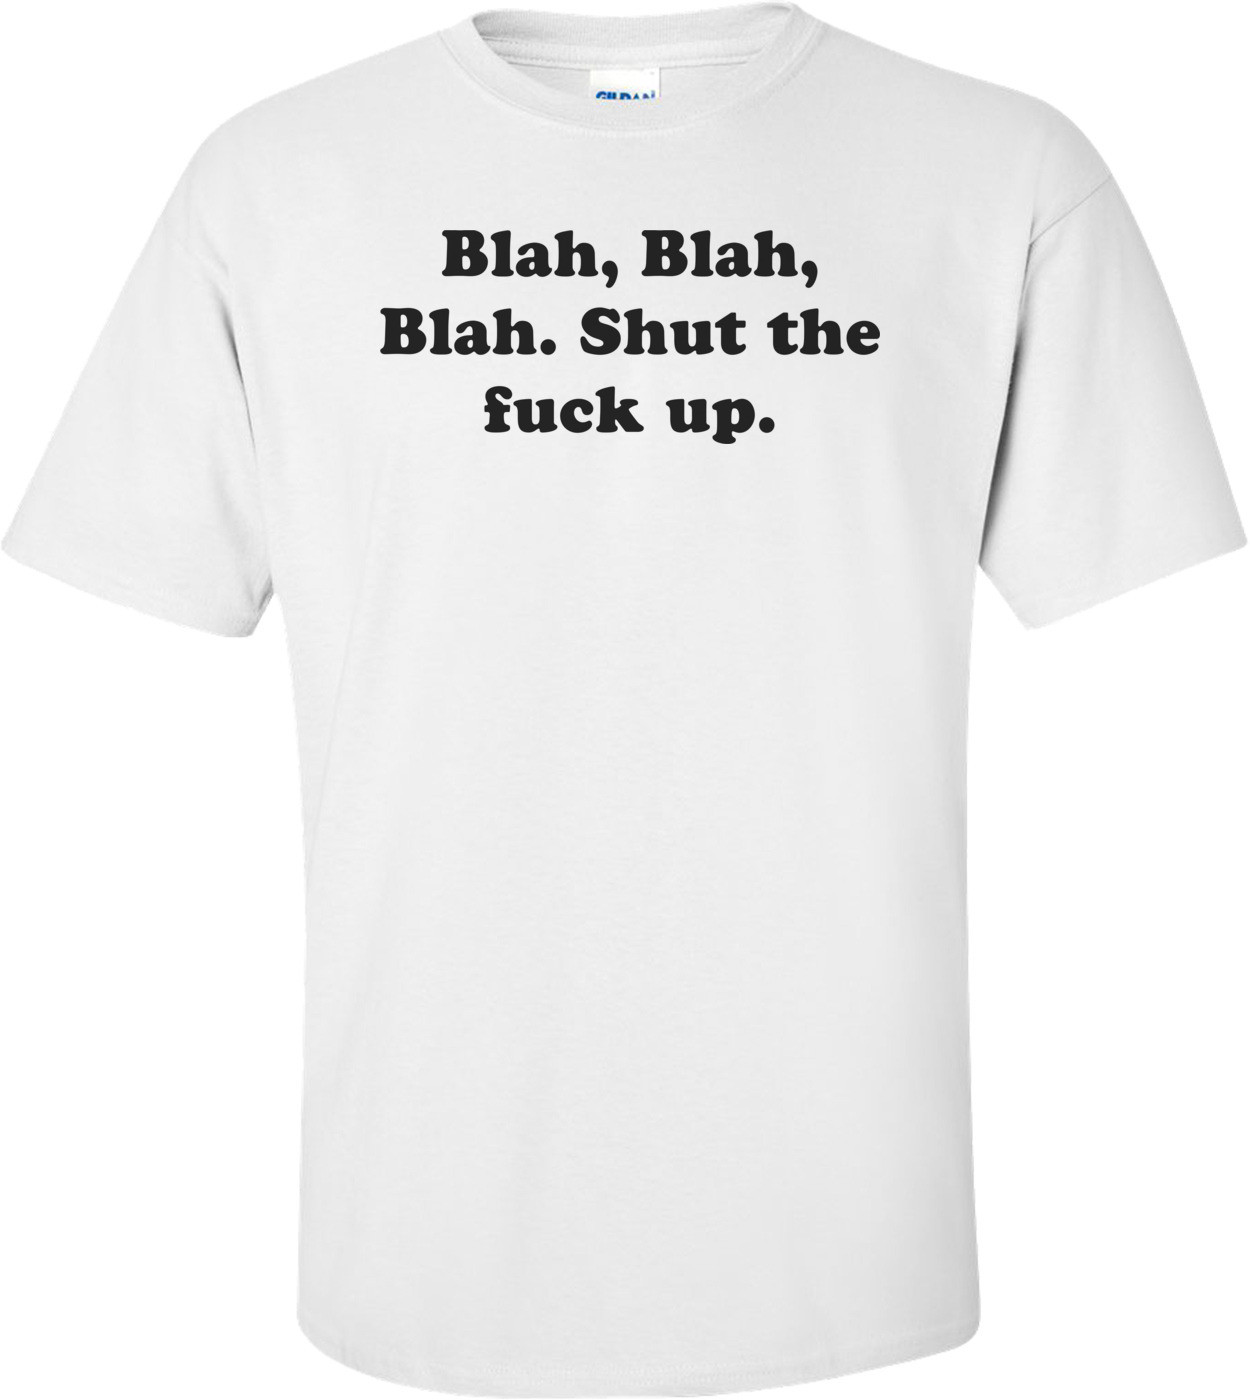 Blah, Blah, Blah. Shut the fuck up. Shirt